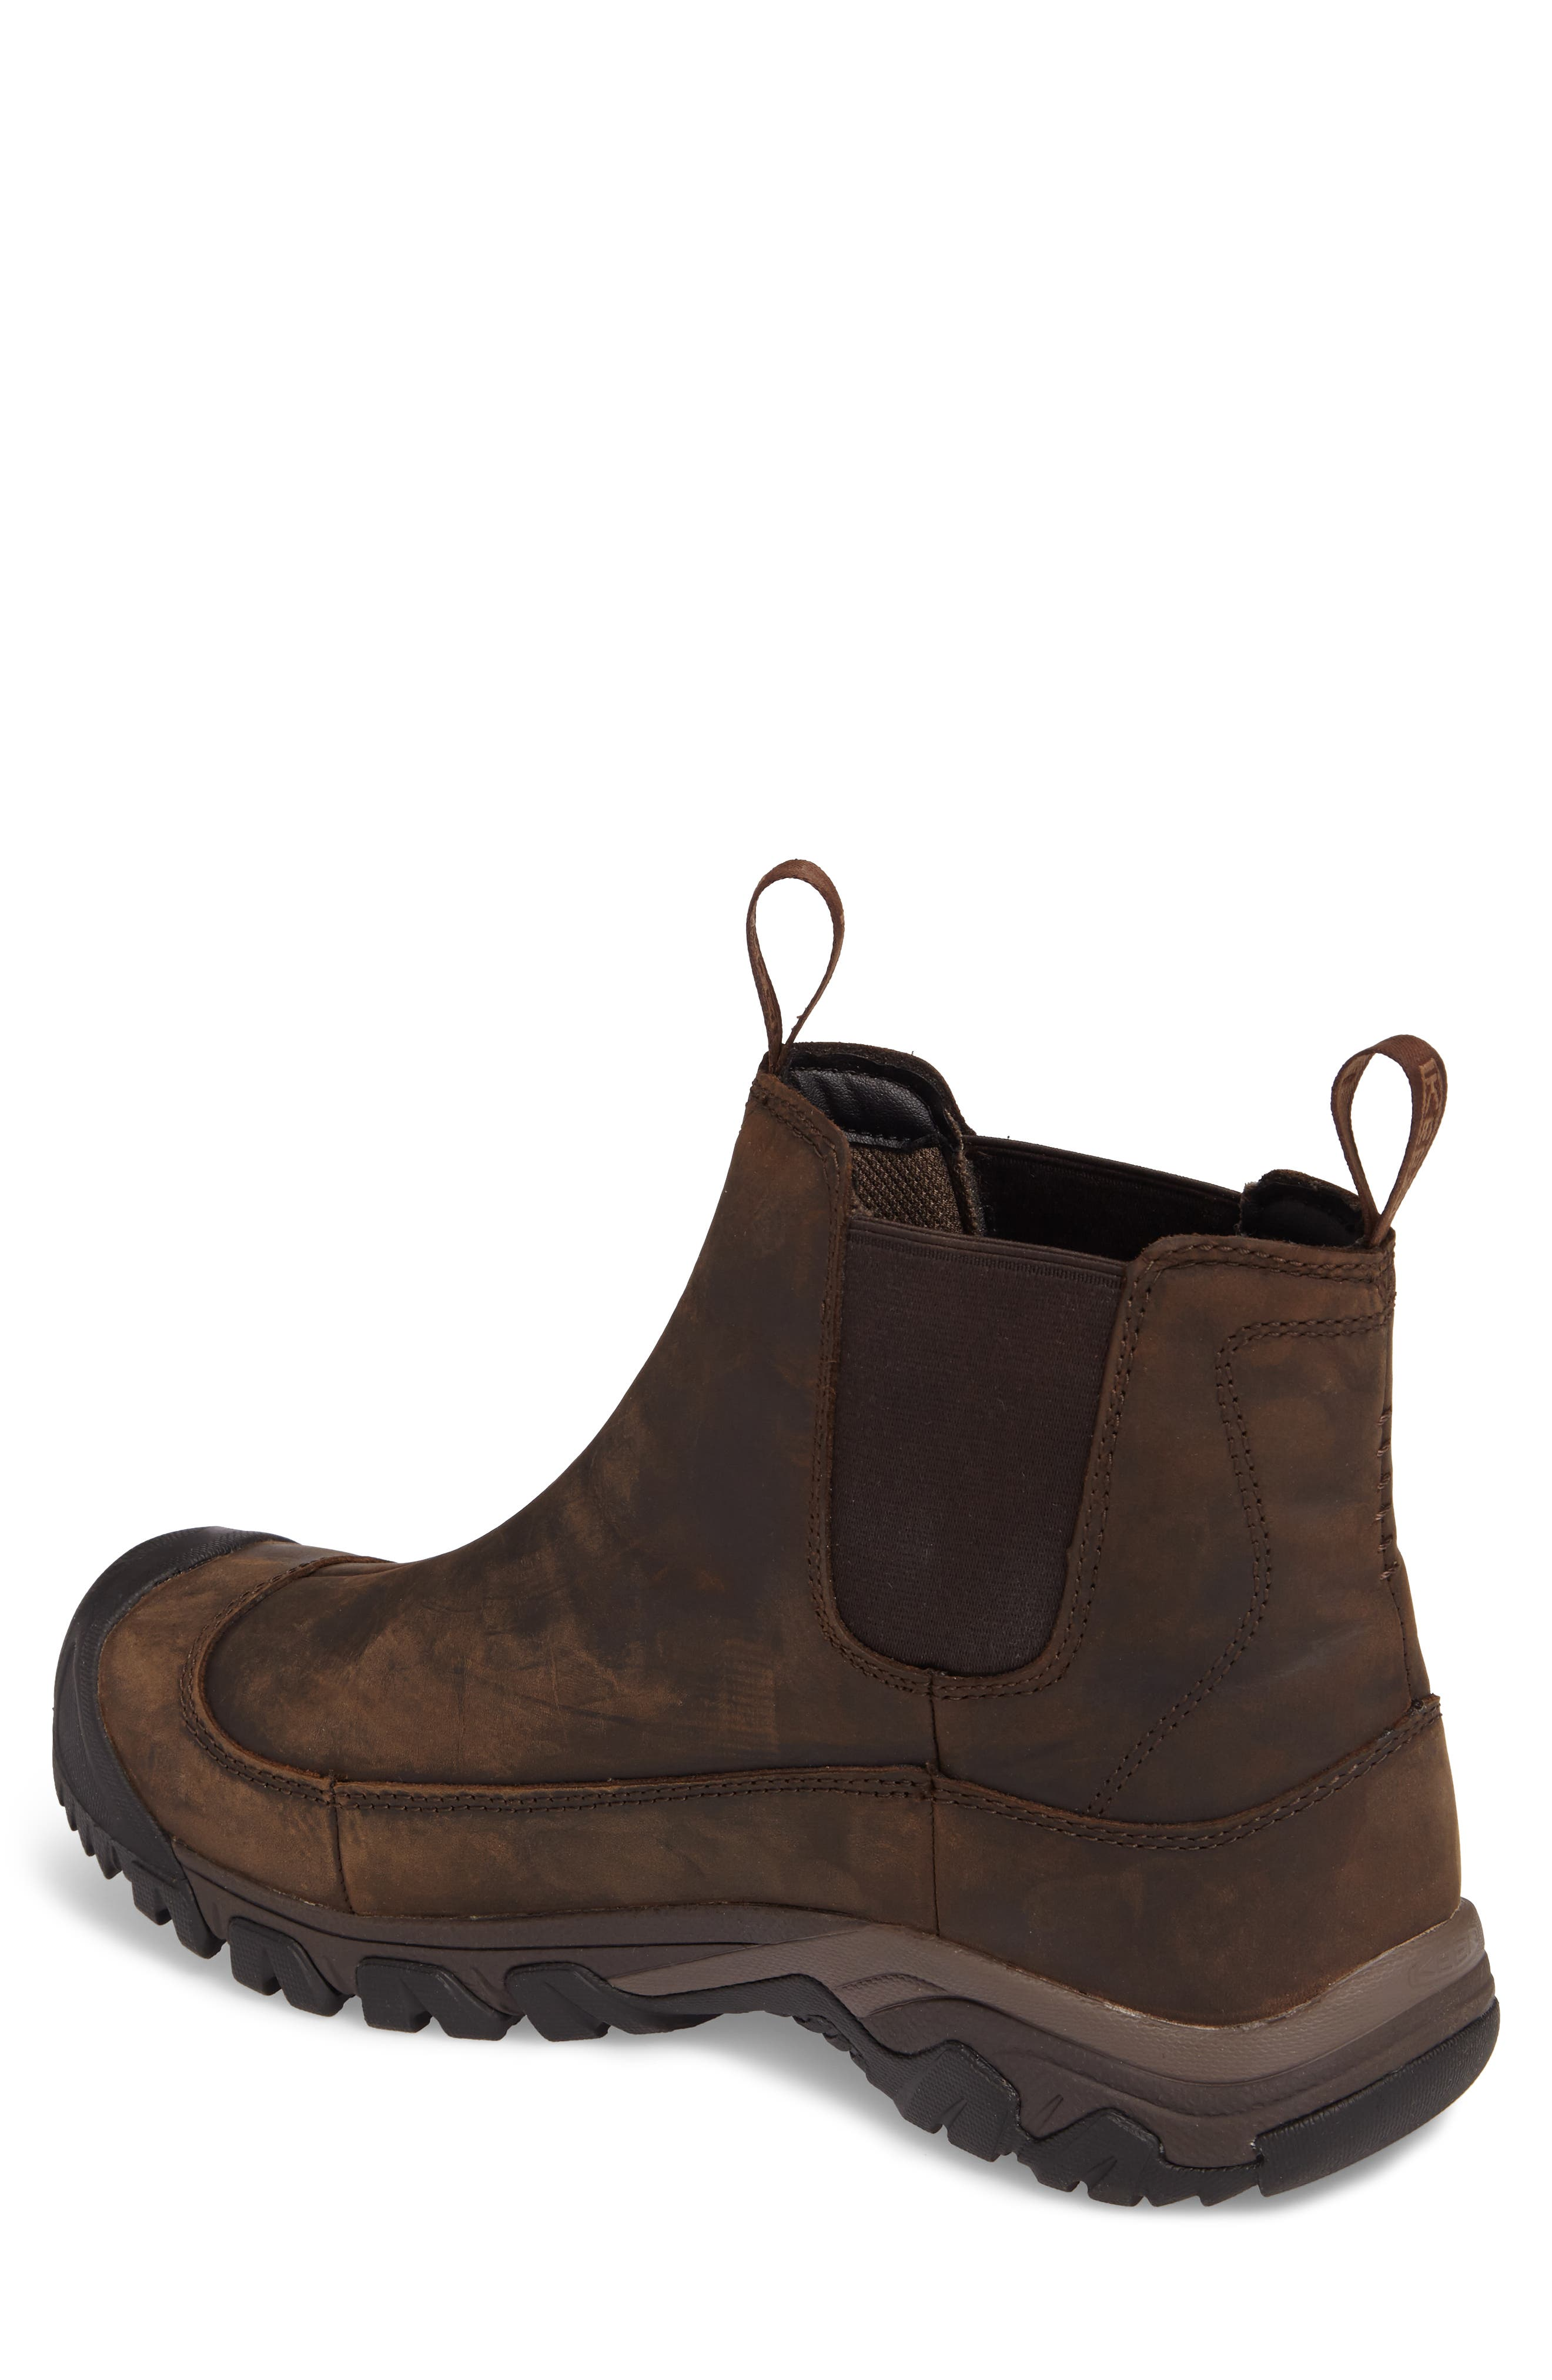 Alternate Image 2  - Keen Anchorage II Waterproof Chelsea Boot (Men)